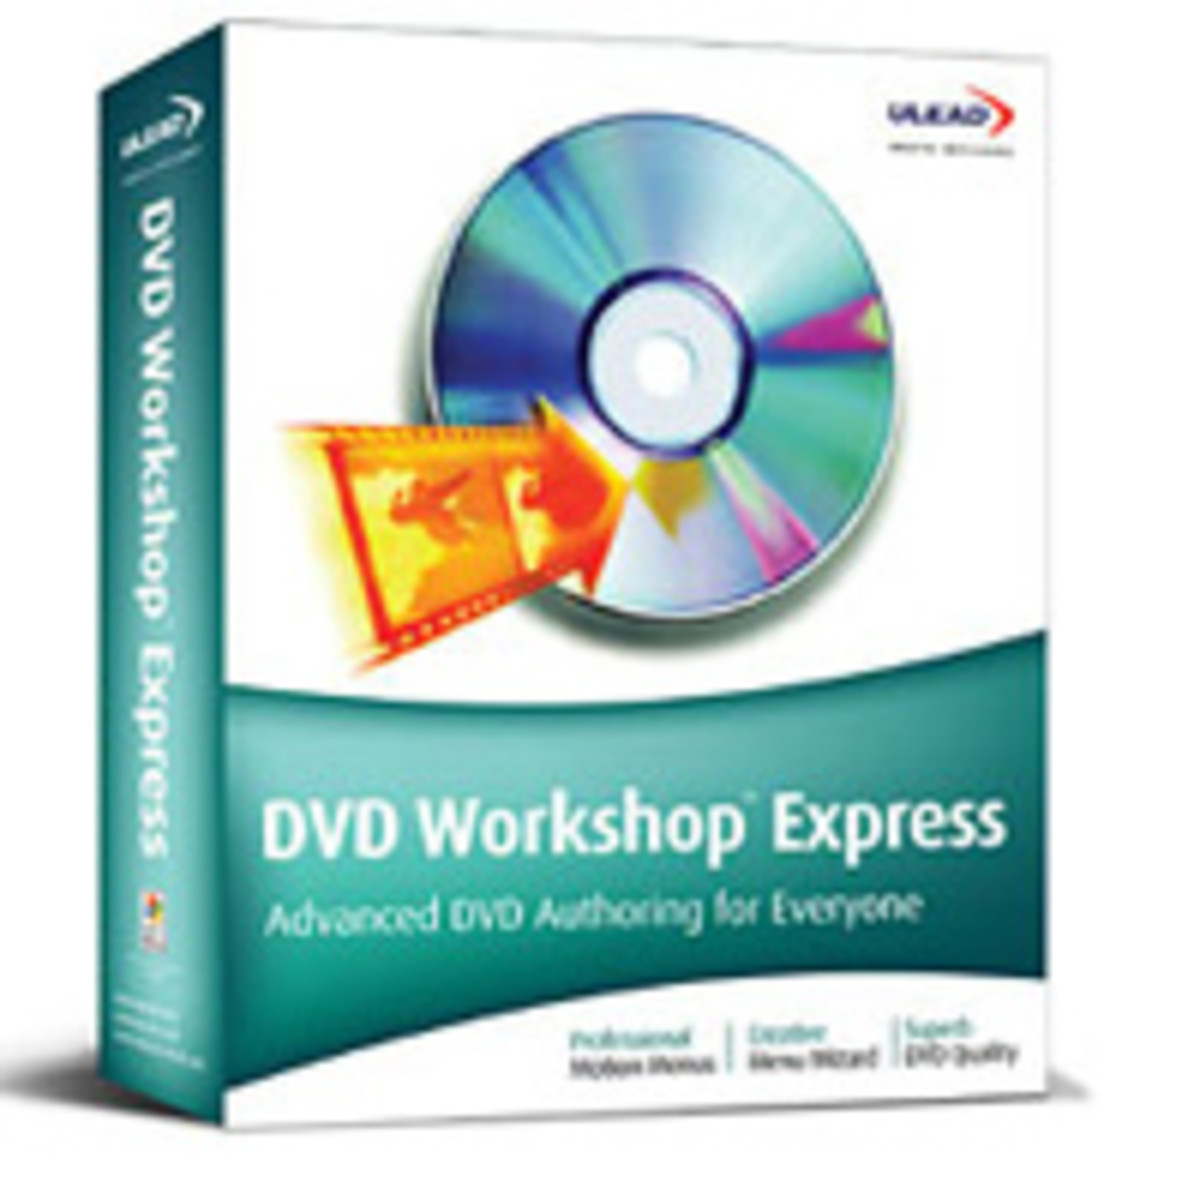 DISC Ulead DVD Workshop Express